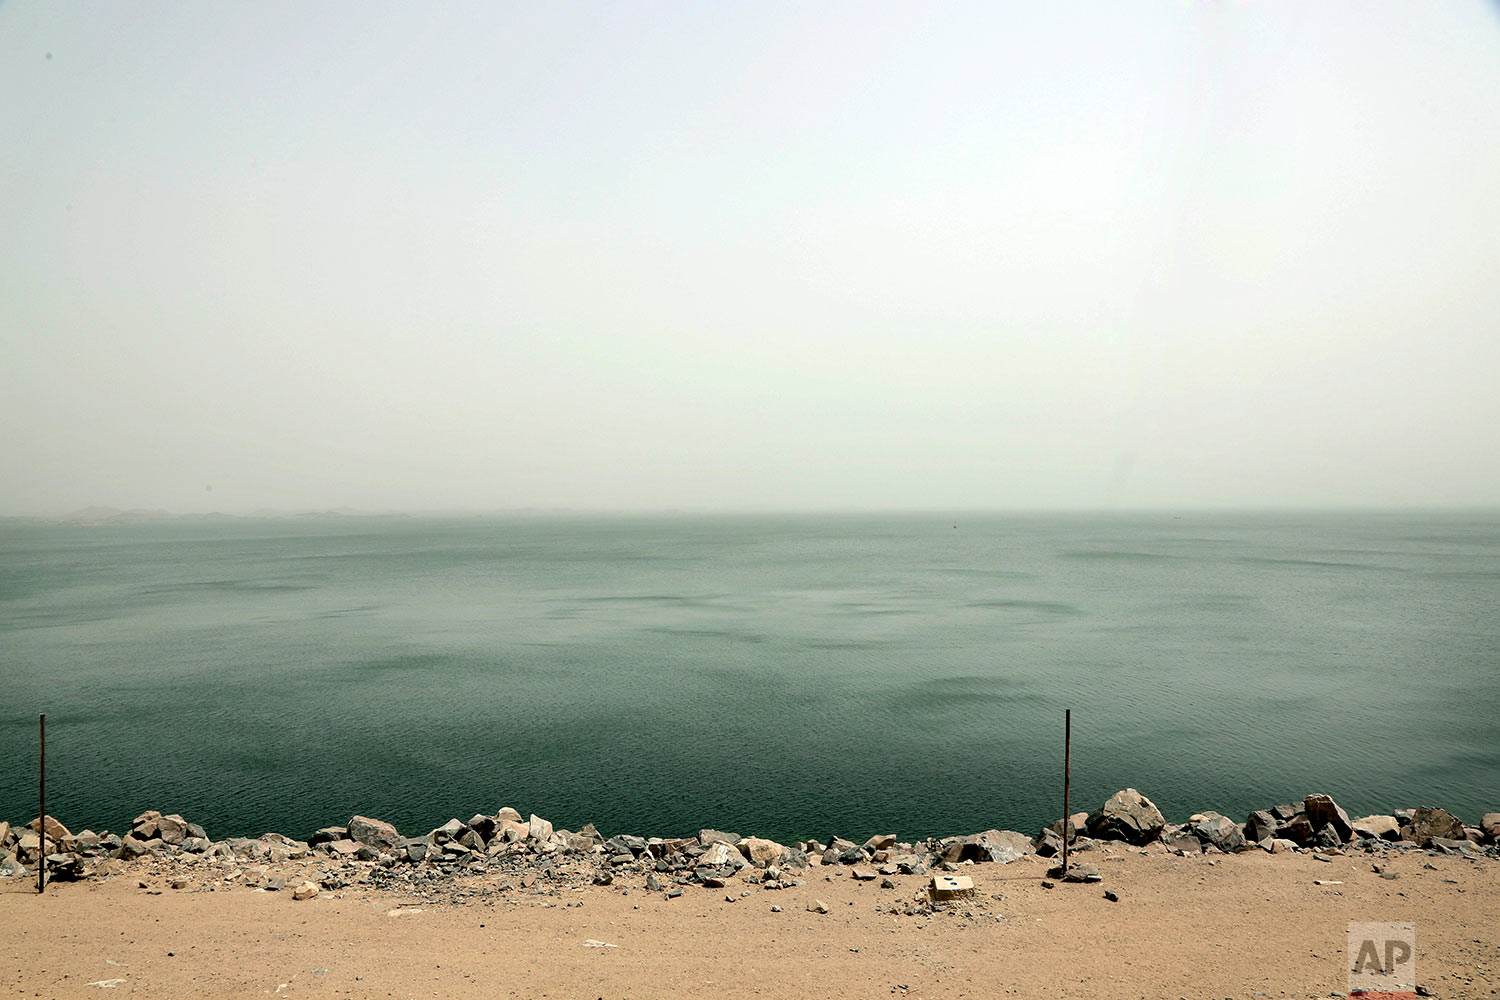 Lake Nasser, the other side of the high dam which flooded the Nubians' ancestral homeland in the1950s and 1960s, in Aswan, Egypt.(AP Photo/Nariman El-Mofty)